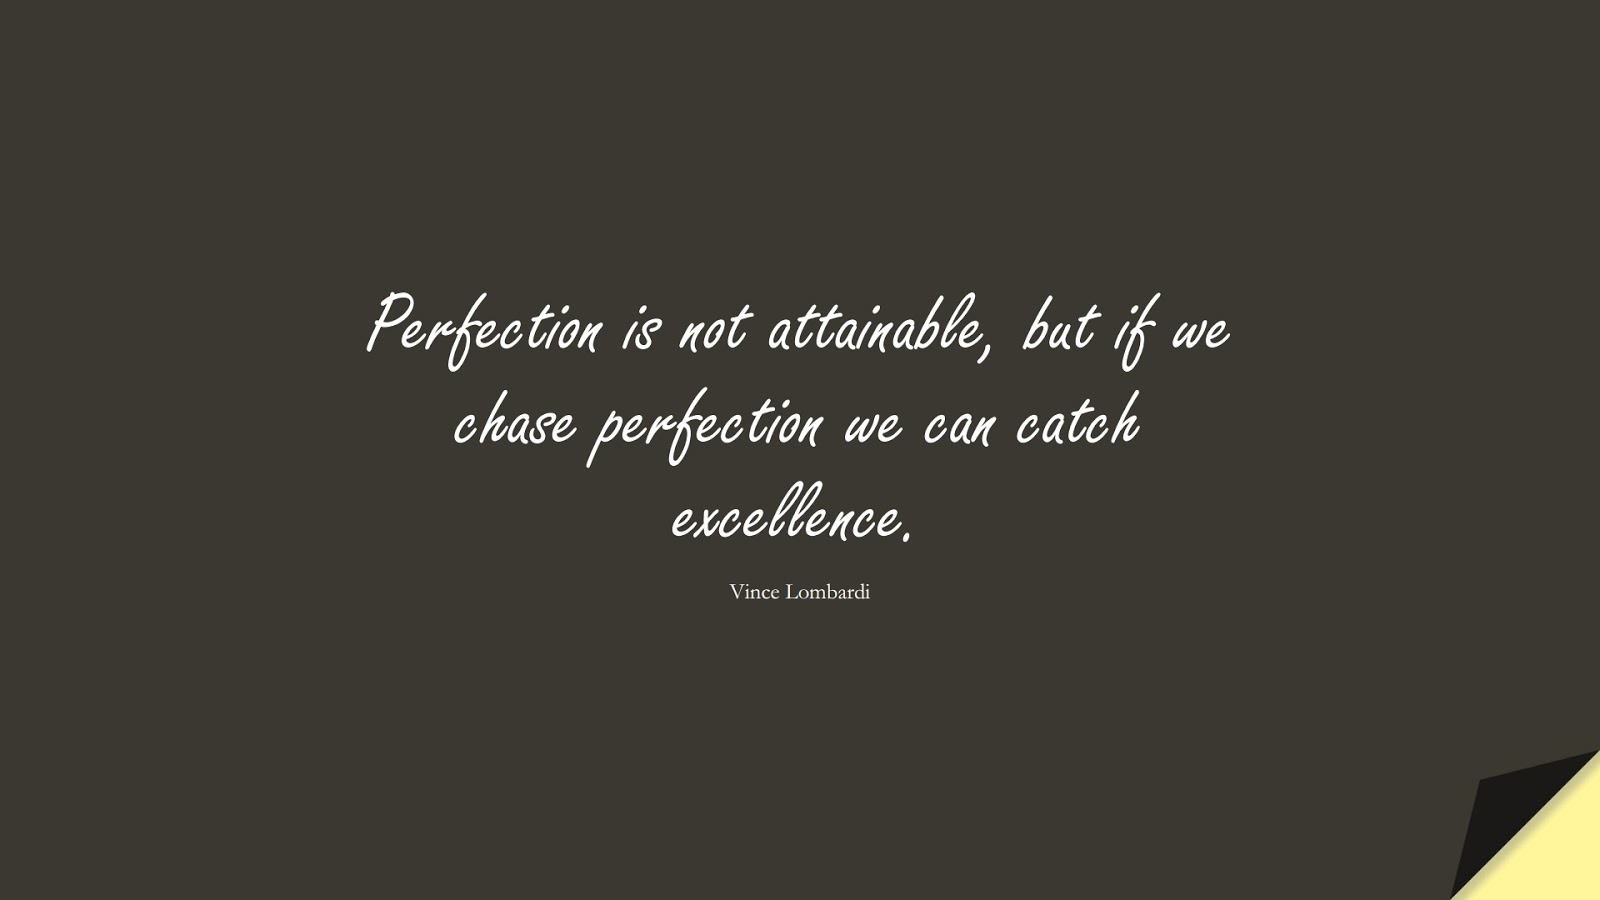 Perfection is not attainable, but if we chase perfection we can catch excellence. (Vince Lombardi);  #FamousQuotes